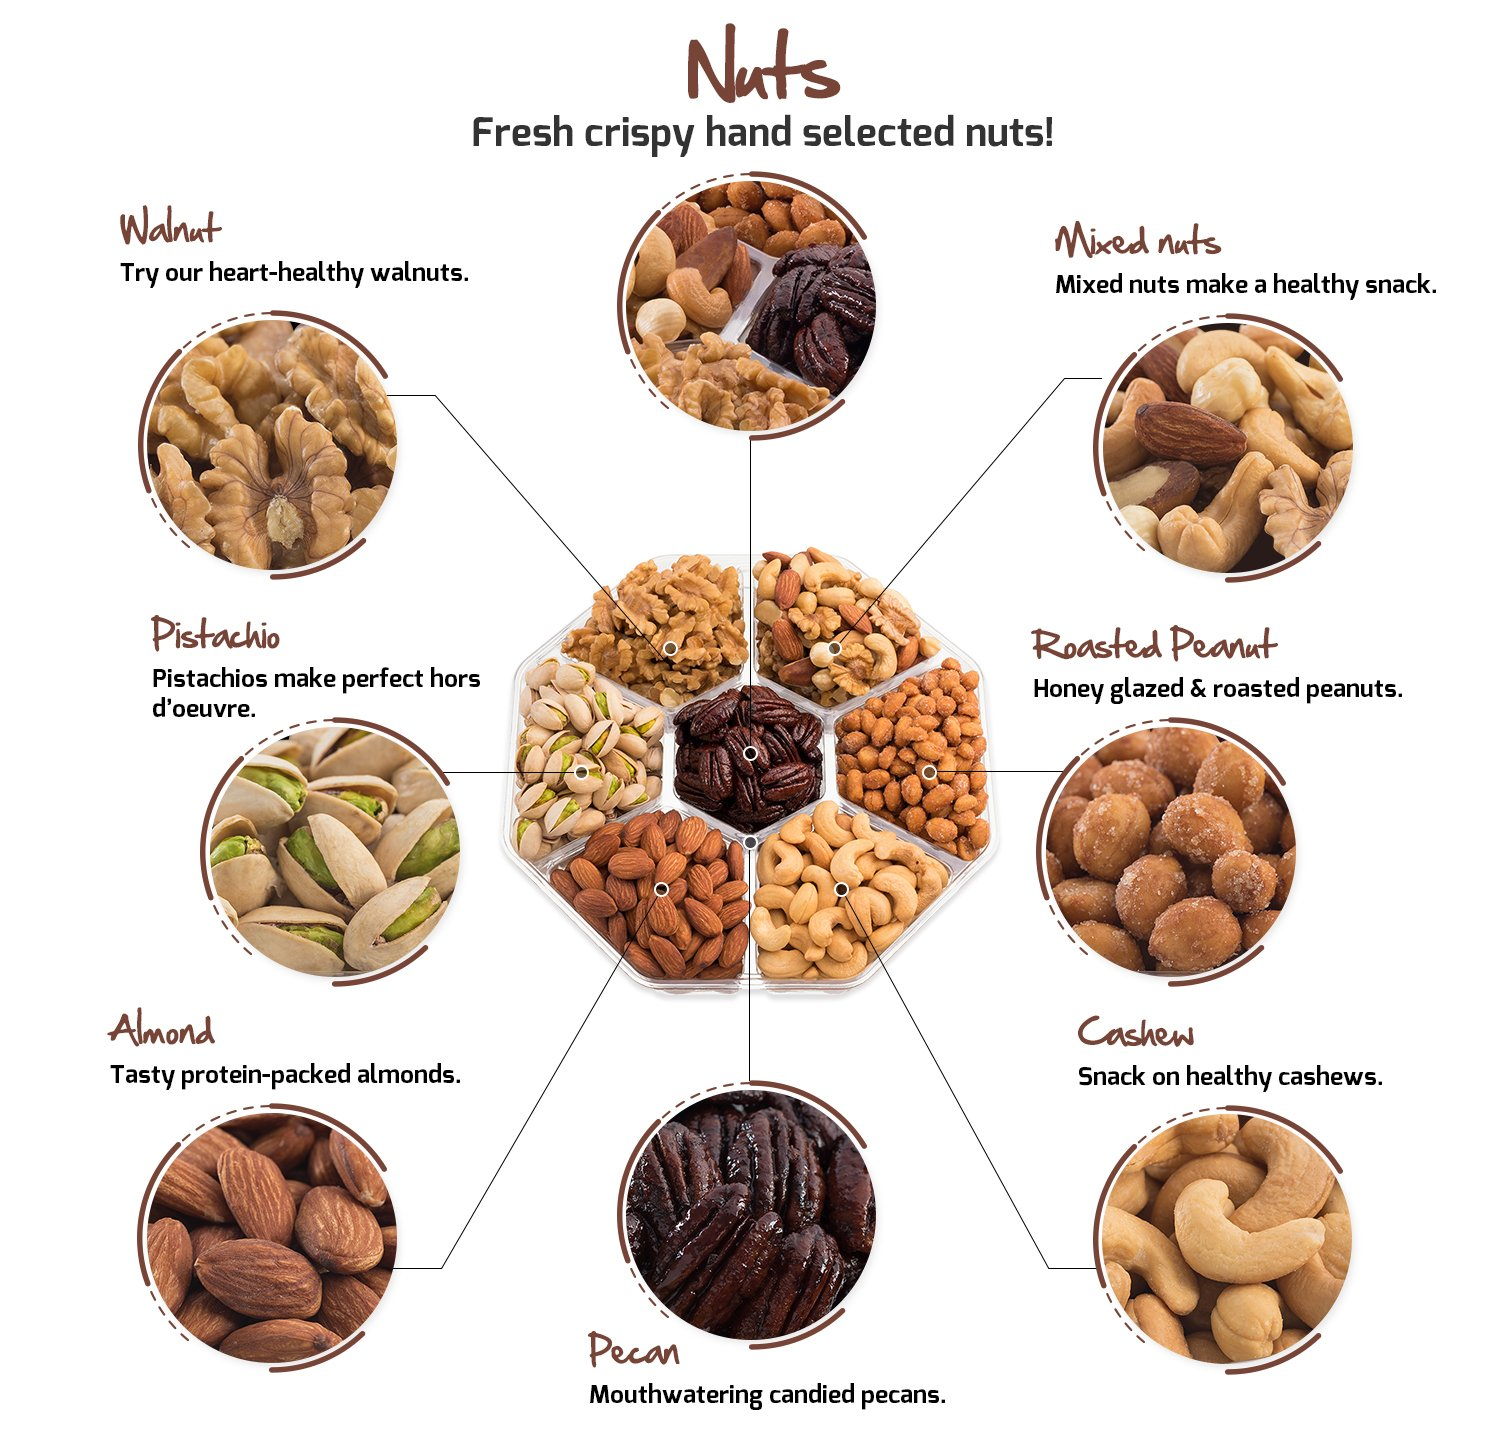 Mother's Day Nuts Gift Basket | Large 7-Sectional Delicious Variety Mixed Nuts Prime Gift | Healthy Fresh Gift Idea For Christmas, Easter, Mothers & Fathers Day, And Birthday by Nut Cravings (Image #2)